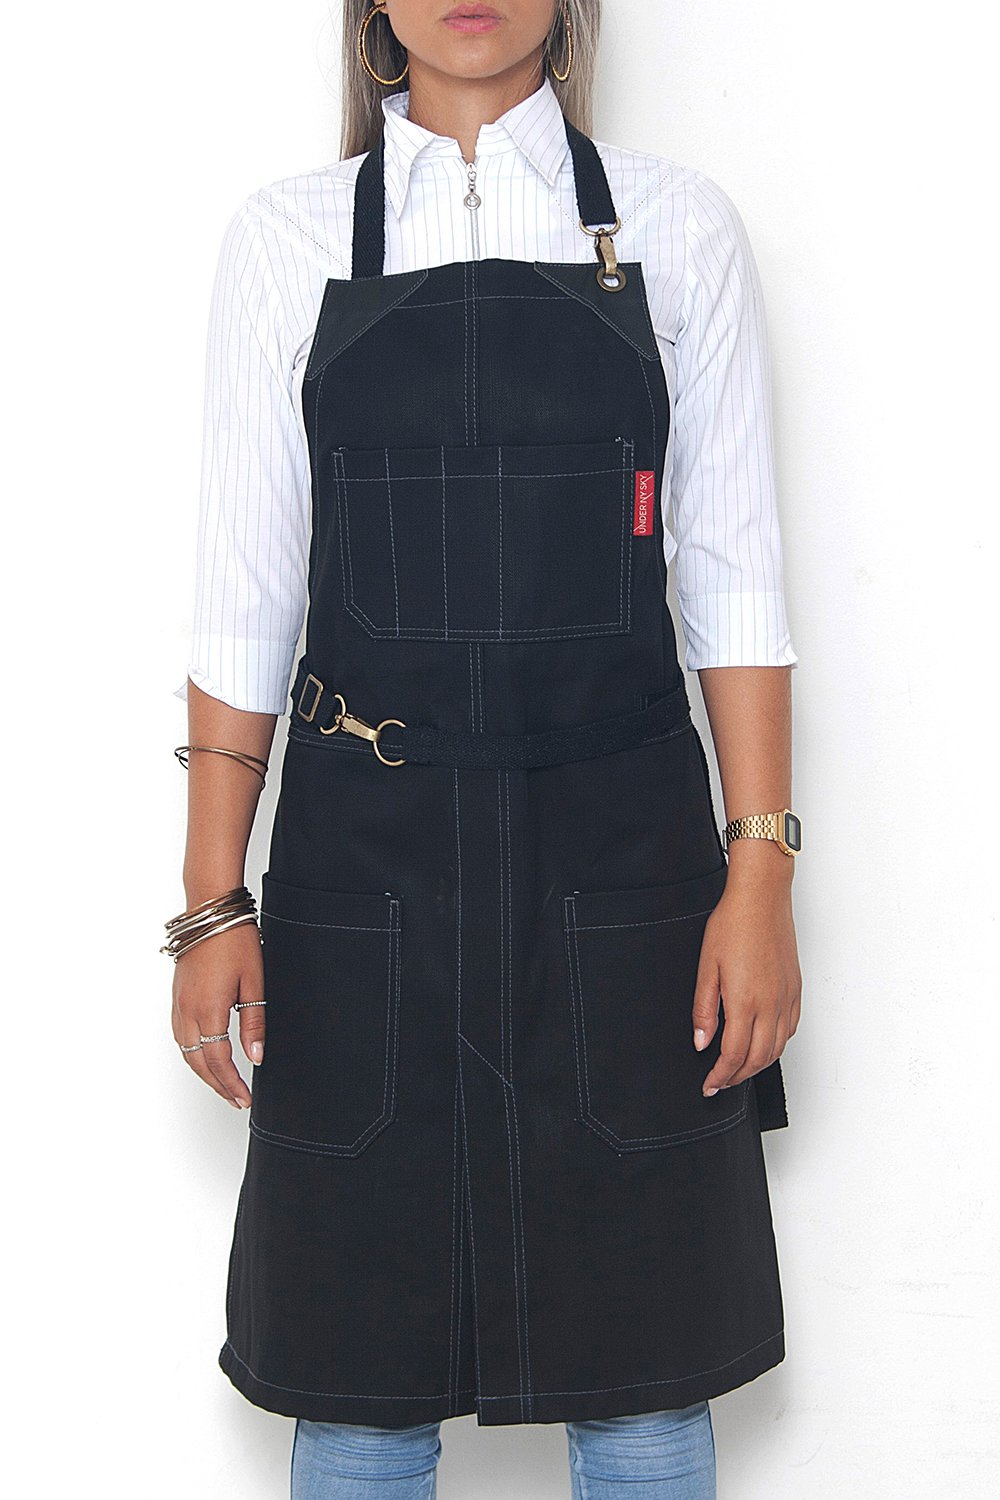 Under NY Sky No-Tie Blackout Black Apron – Coated Denim with Leather Reinforcement, Split-Leg, Adjustable for Men and Women – Pro Barber, Tattoo, Barista, Bartender, Hair Stylist, Server Aprons by Under NY Sky (Image #1)